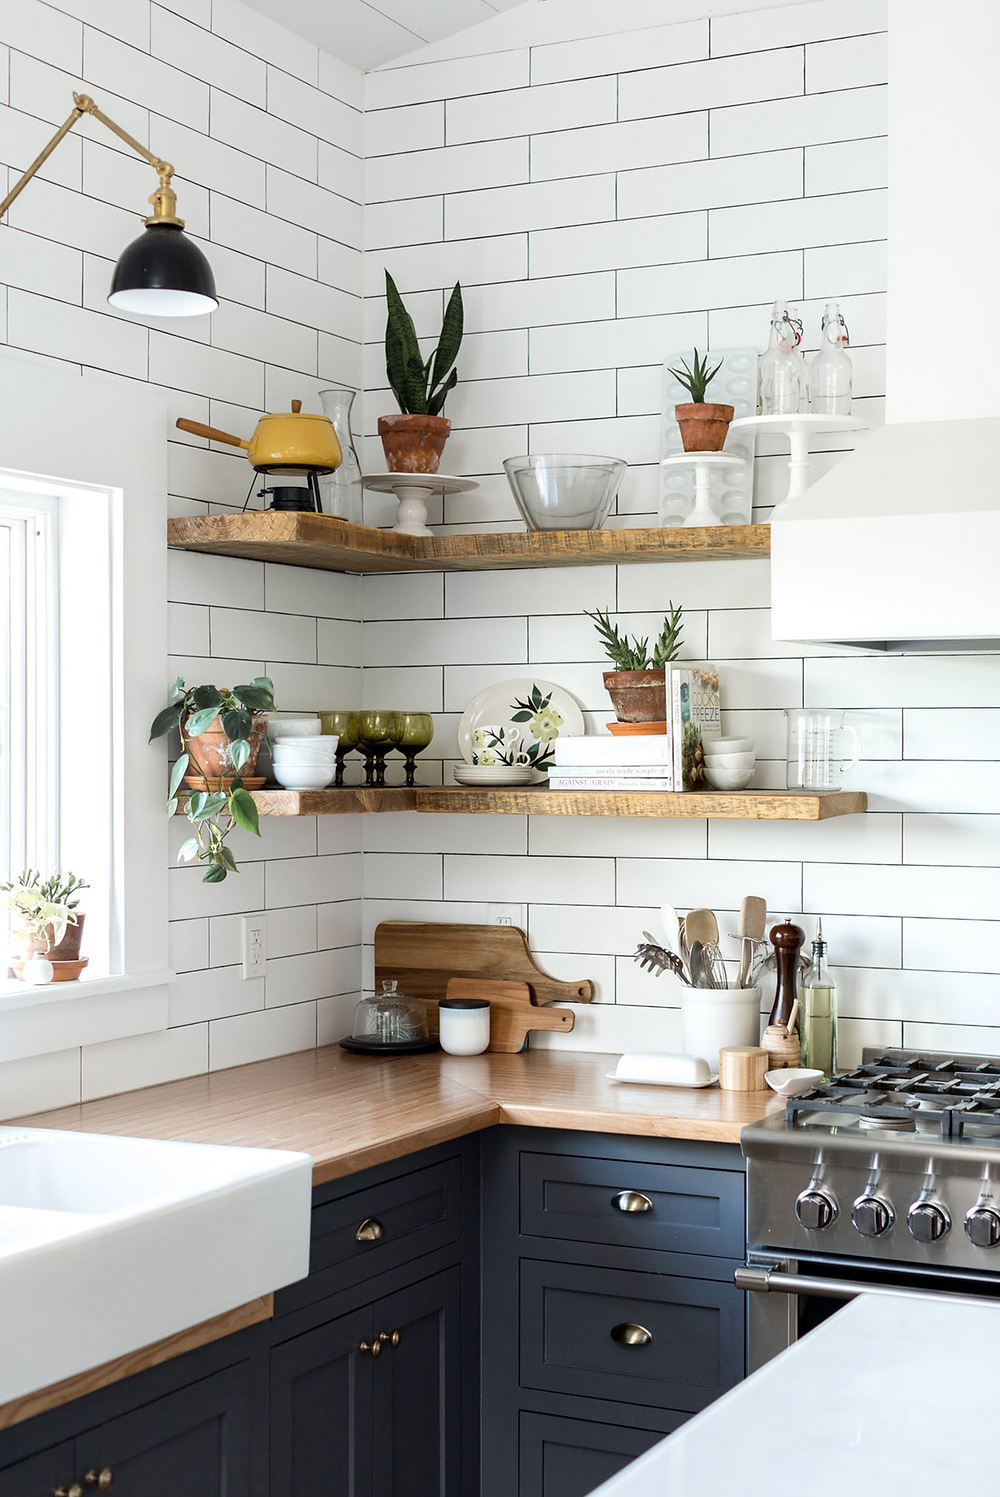 A kitchen with navy blue cabinets and white subway tiles with contrasting grout with open wood shelves displaying some beautiful kitchen accessories.